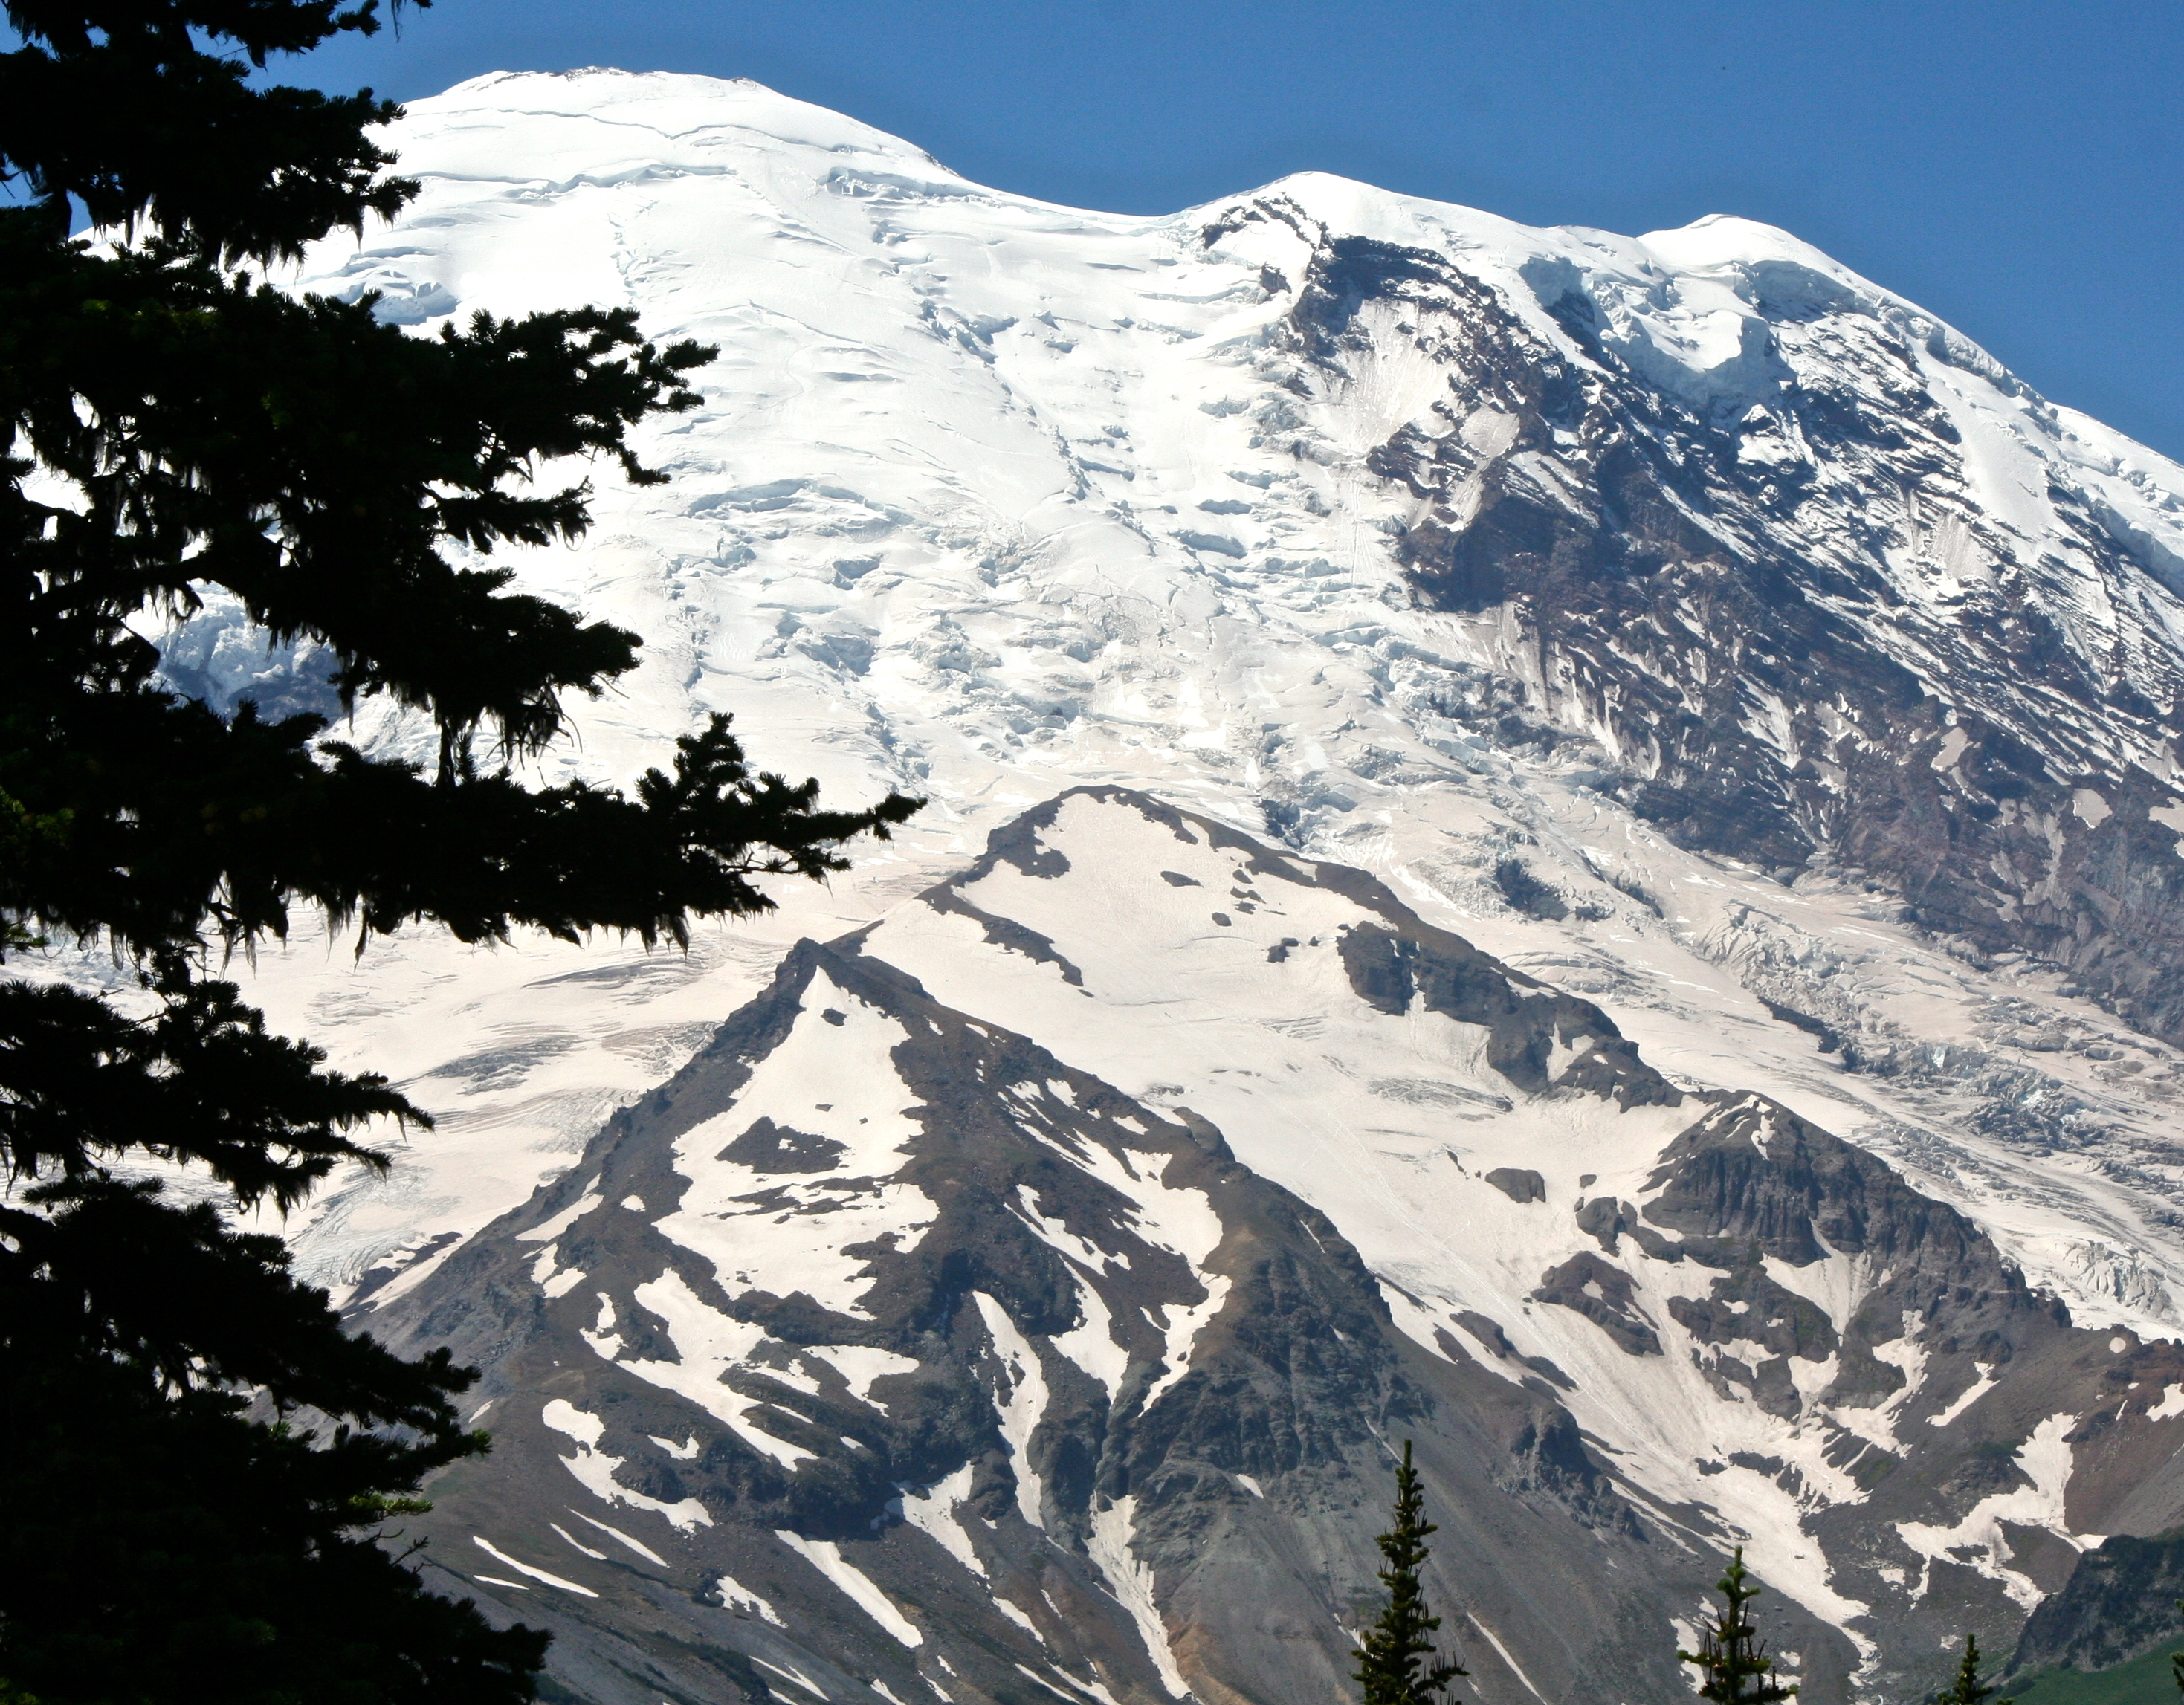 A final view of Emmons Glacier. Next Blog: A giant forest, beautiful falls, and more views of Mt. Rainier. (Photo by Peggy Mekemson.)